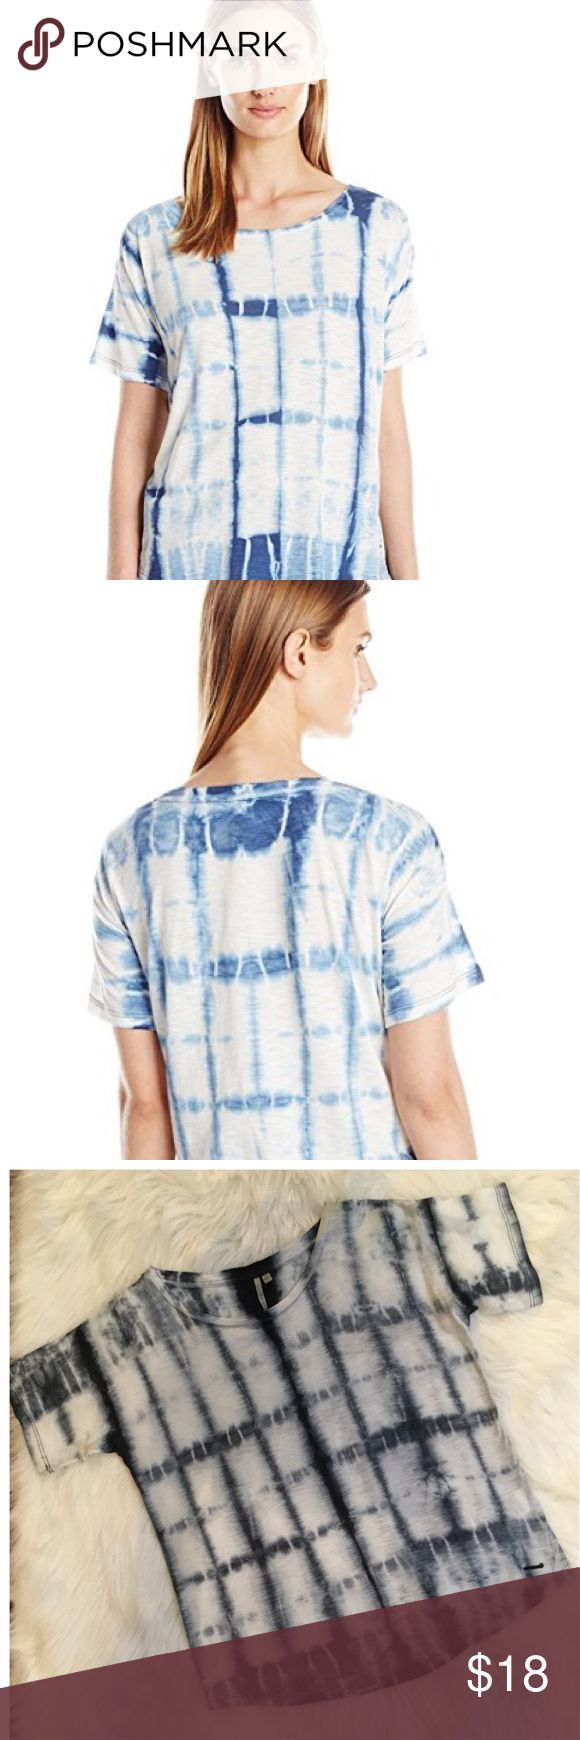 Calvin Klein Jeans Short Sleeve Tie Dye Shirt Calvin Klein Jeans Woman's Short Sleeve Tie Dye Shirt CK Jeans wear tee shirt in tie dyed deep denim blue     on off white background with relaxed fit On trend for summer and perfect with denim Size M 60% cotton/40% modal Very gently used and in perfect condition Calvin Klein Jeans Tops Tees - Short Sleeve